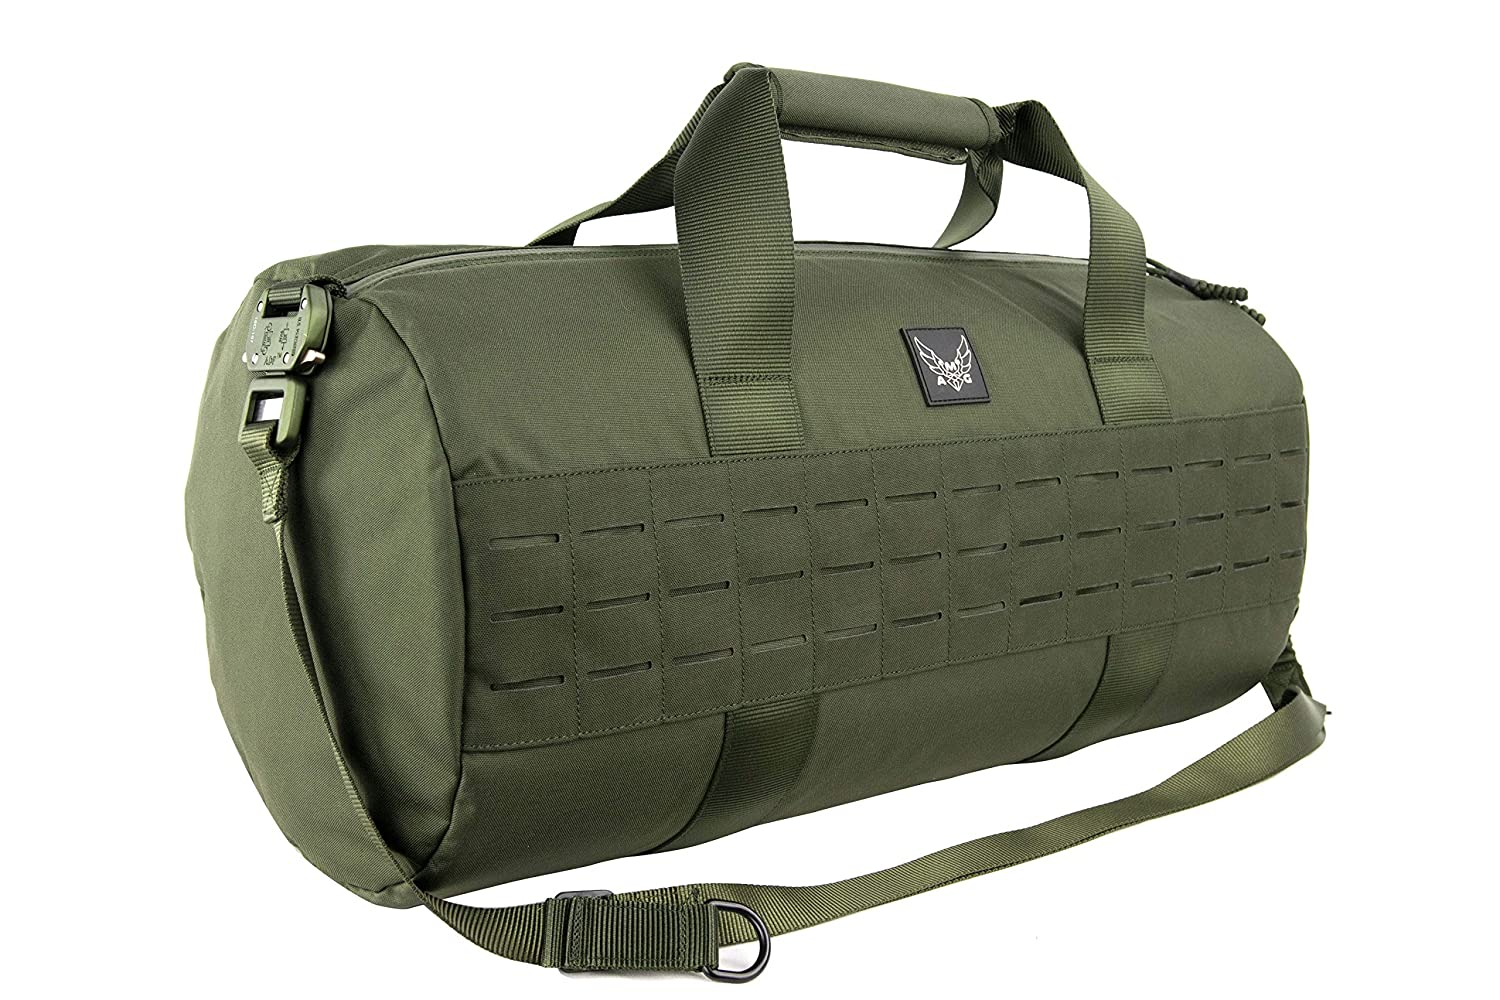 AMG Peruga Medium Military Inspired Duffle Bag with Lazer Cut MOLLE Black